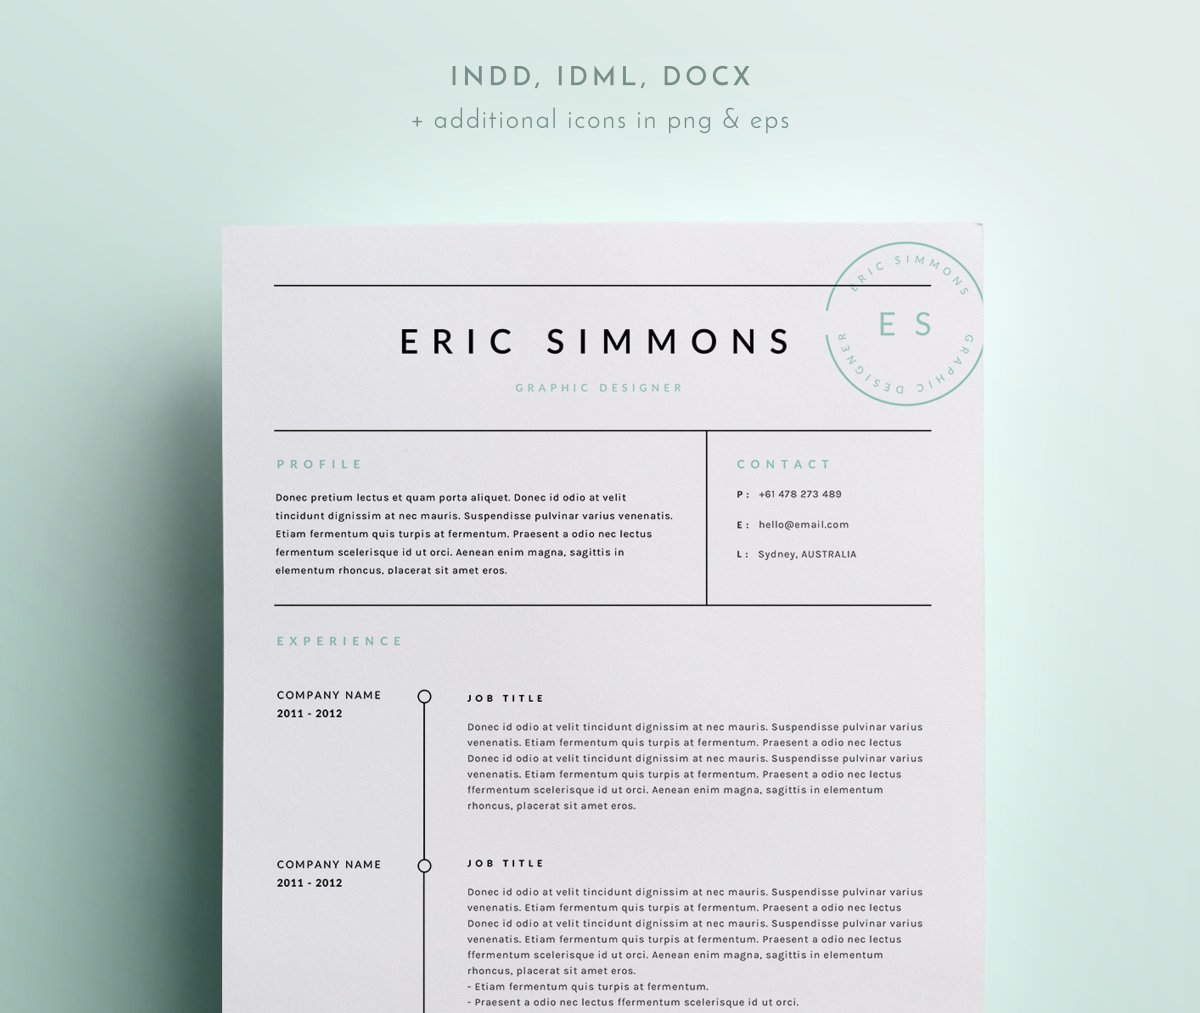 My Resume Is 2 Pages 20 Free And Premium Best Resume Templates Word Psd Indd